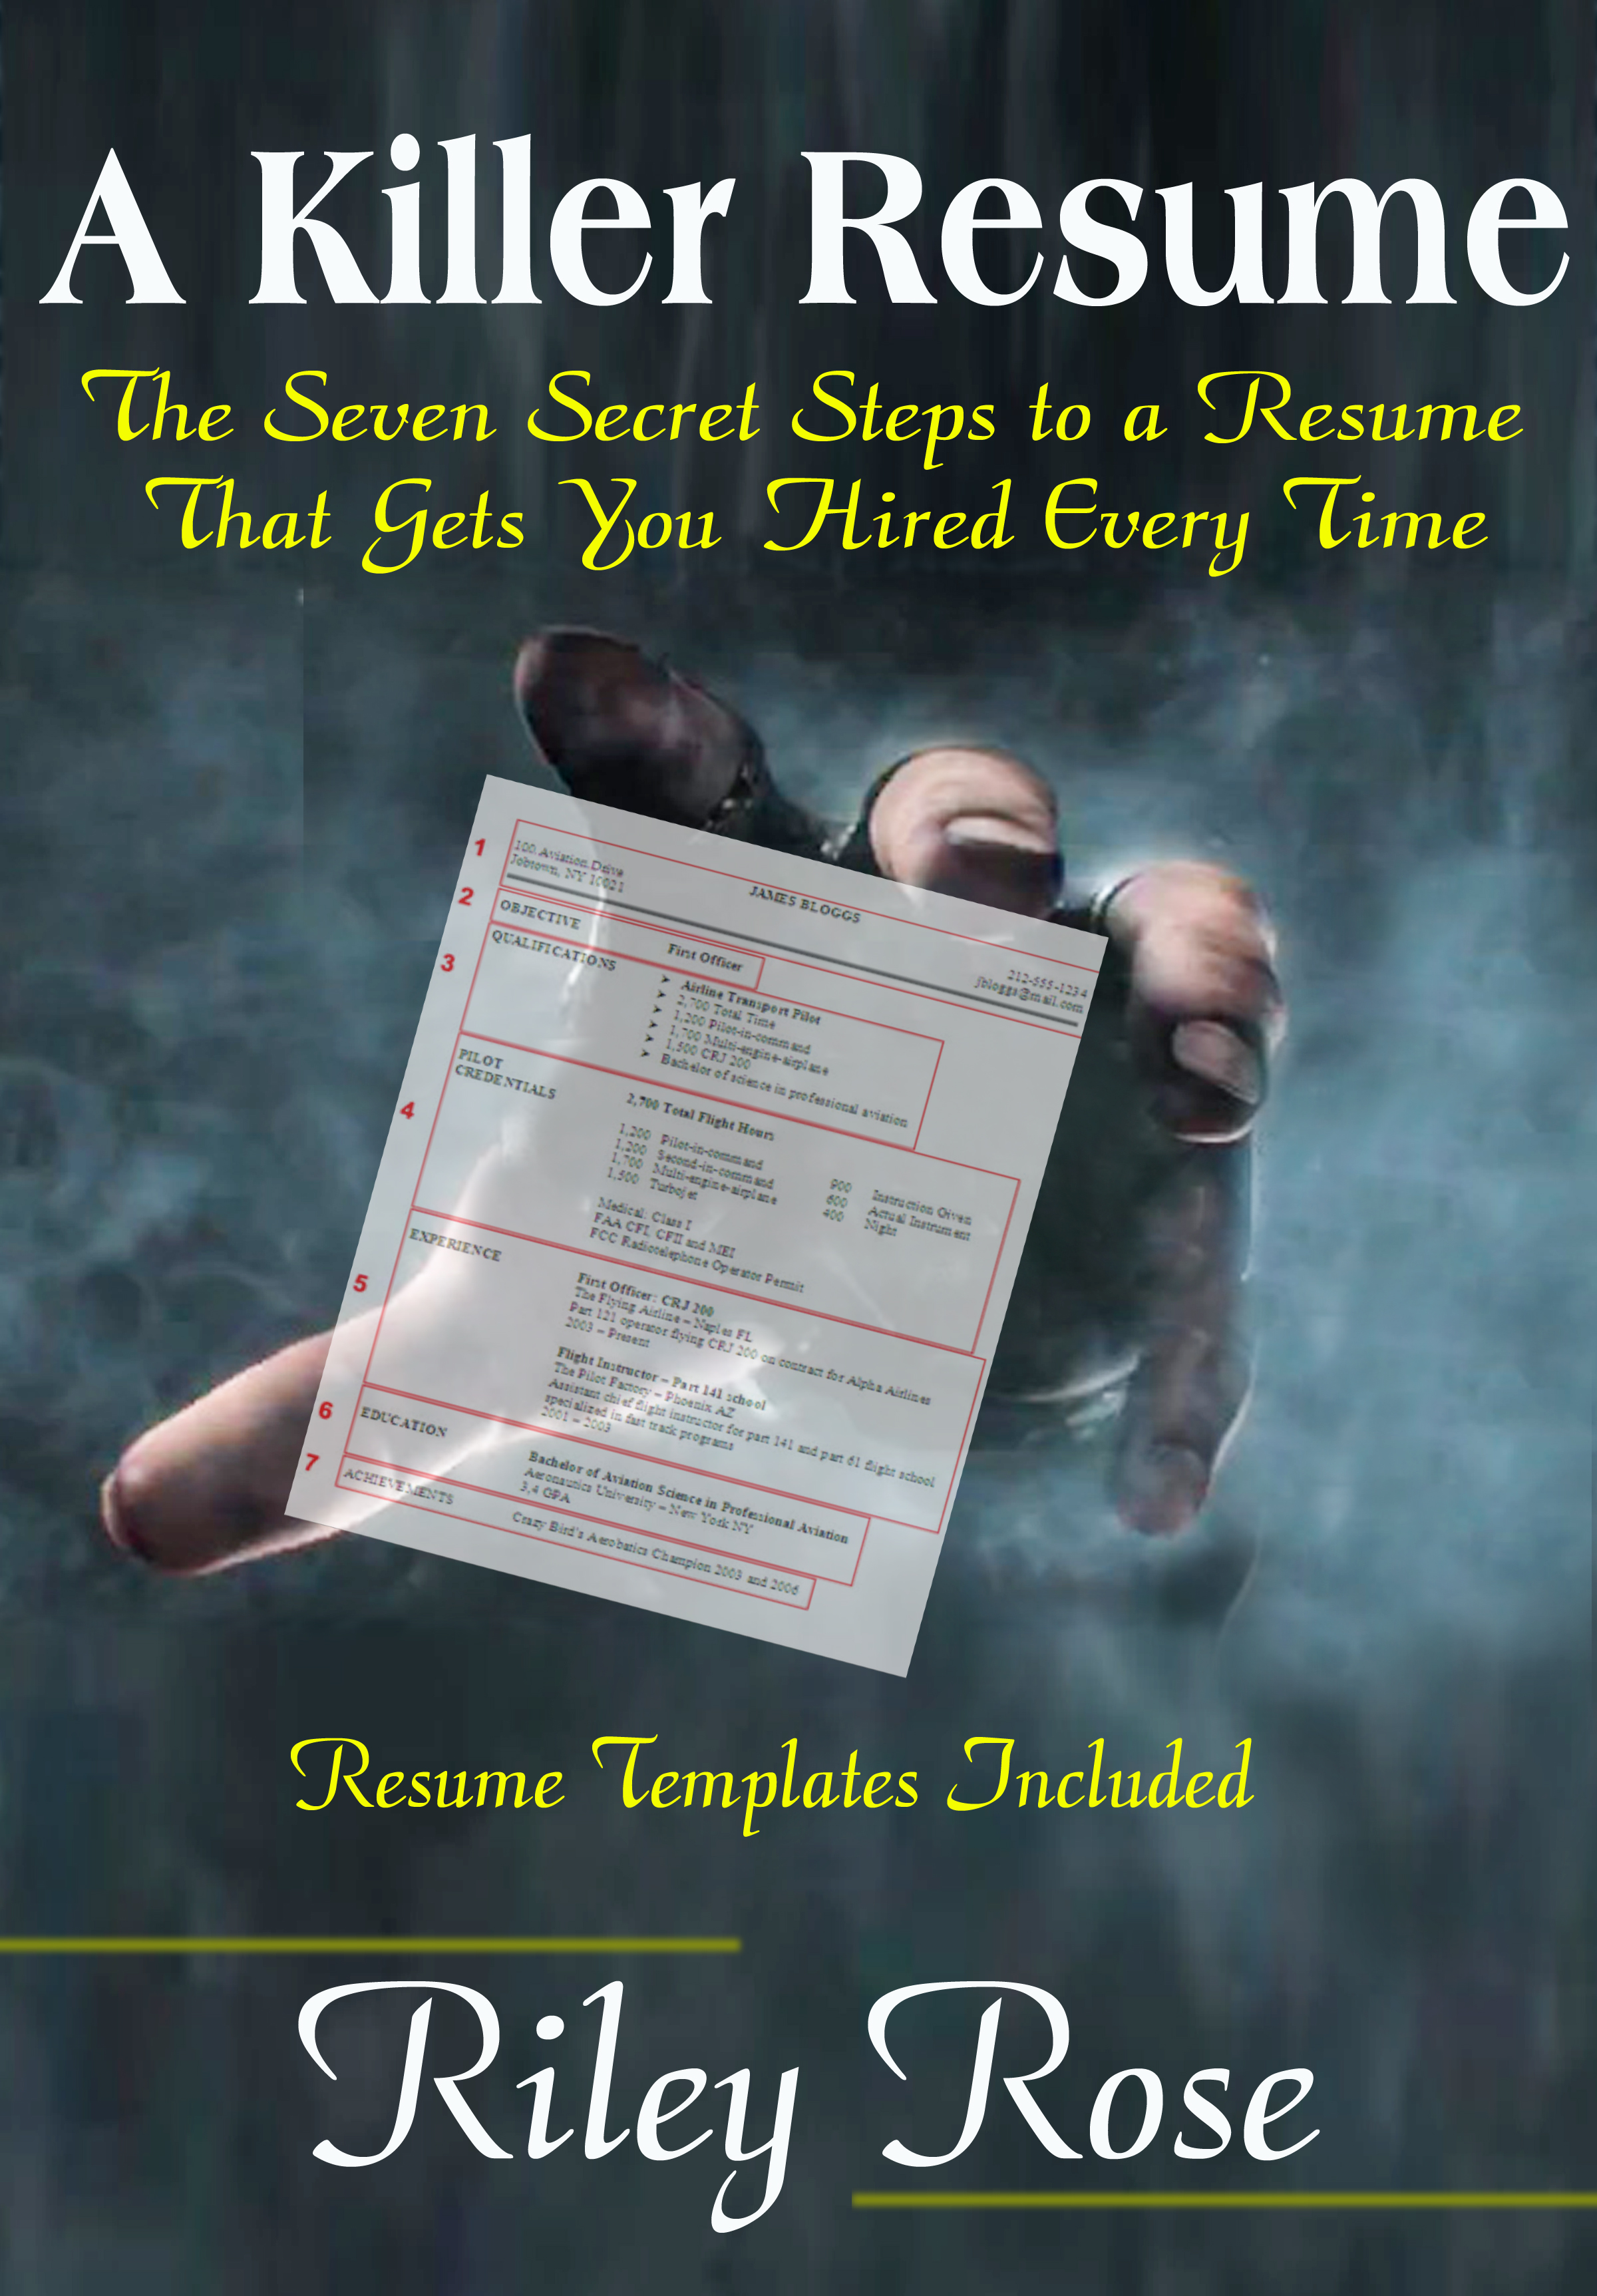 a killer resume book cover 2 072813